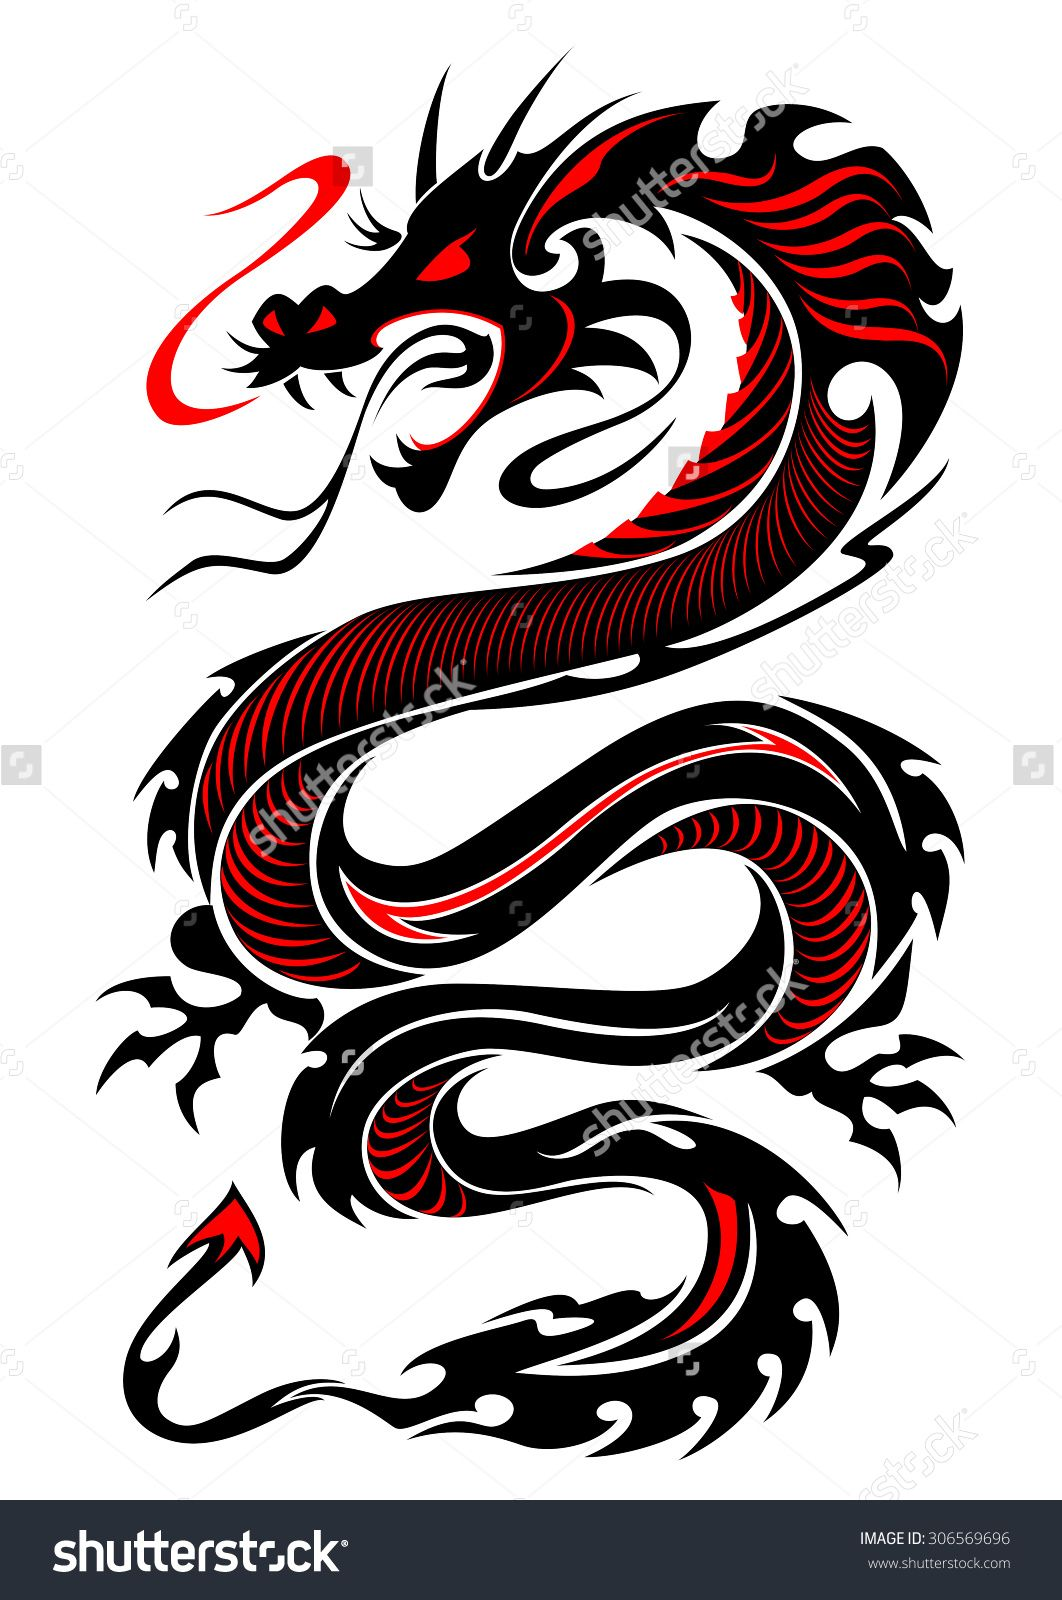 Flaming Tribal Dragon Tattoo Vector Illustration In Black And Red